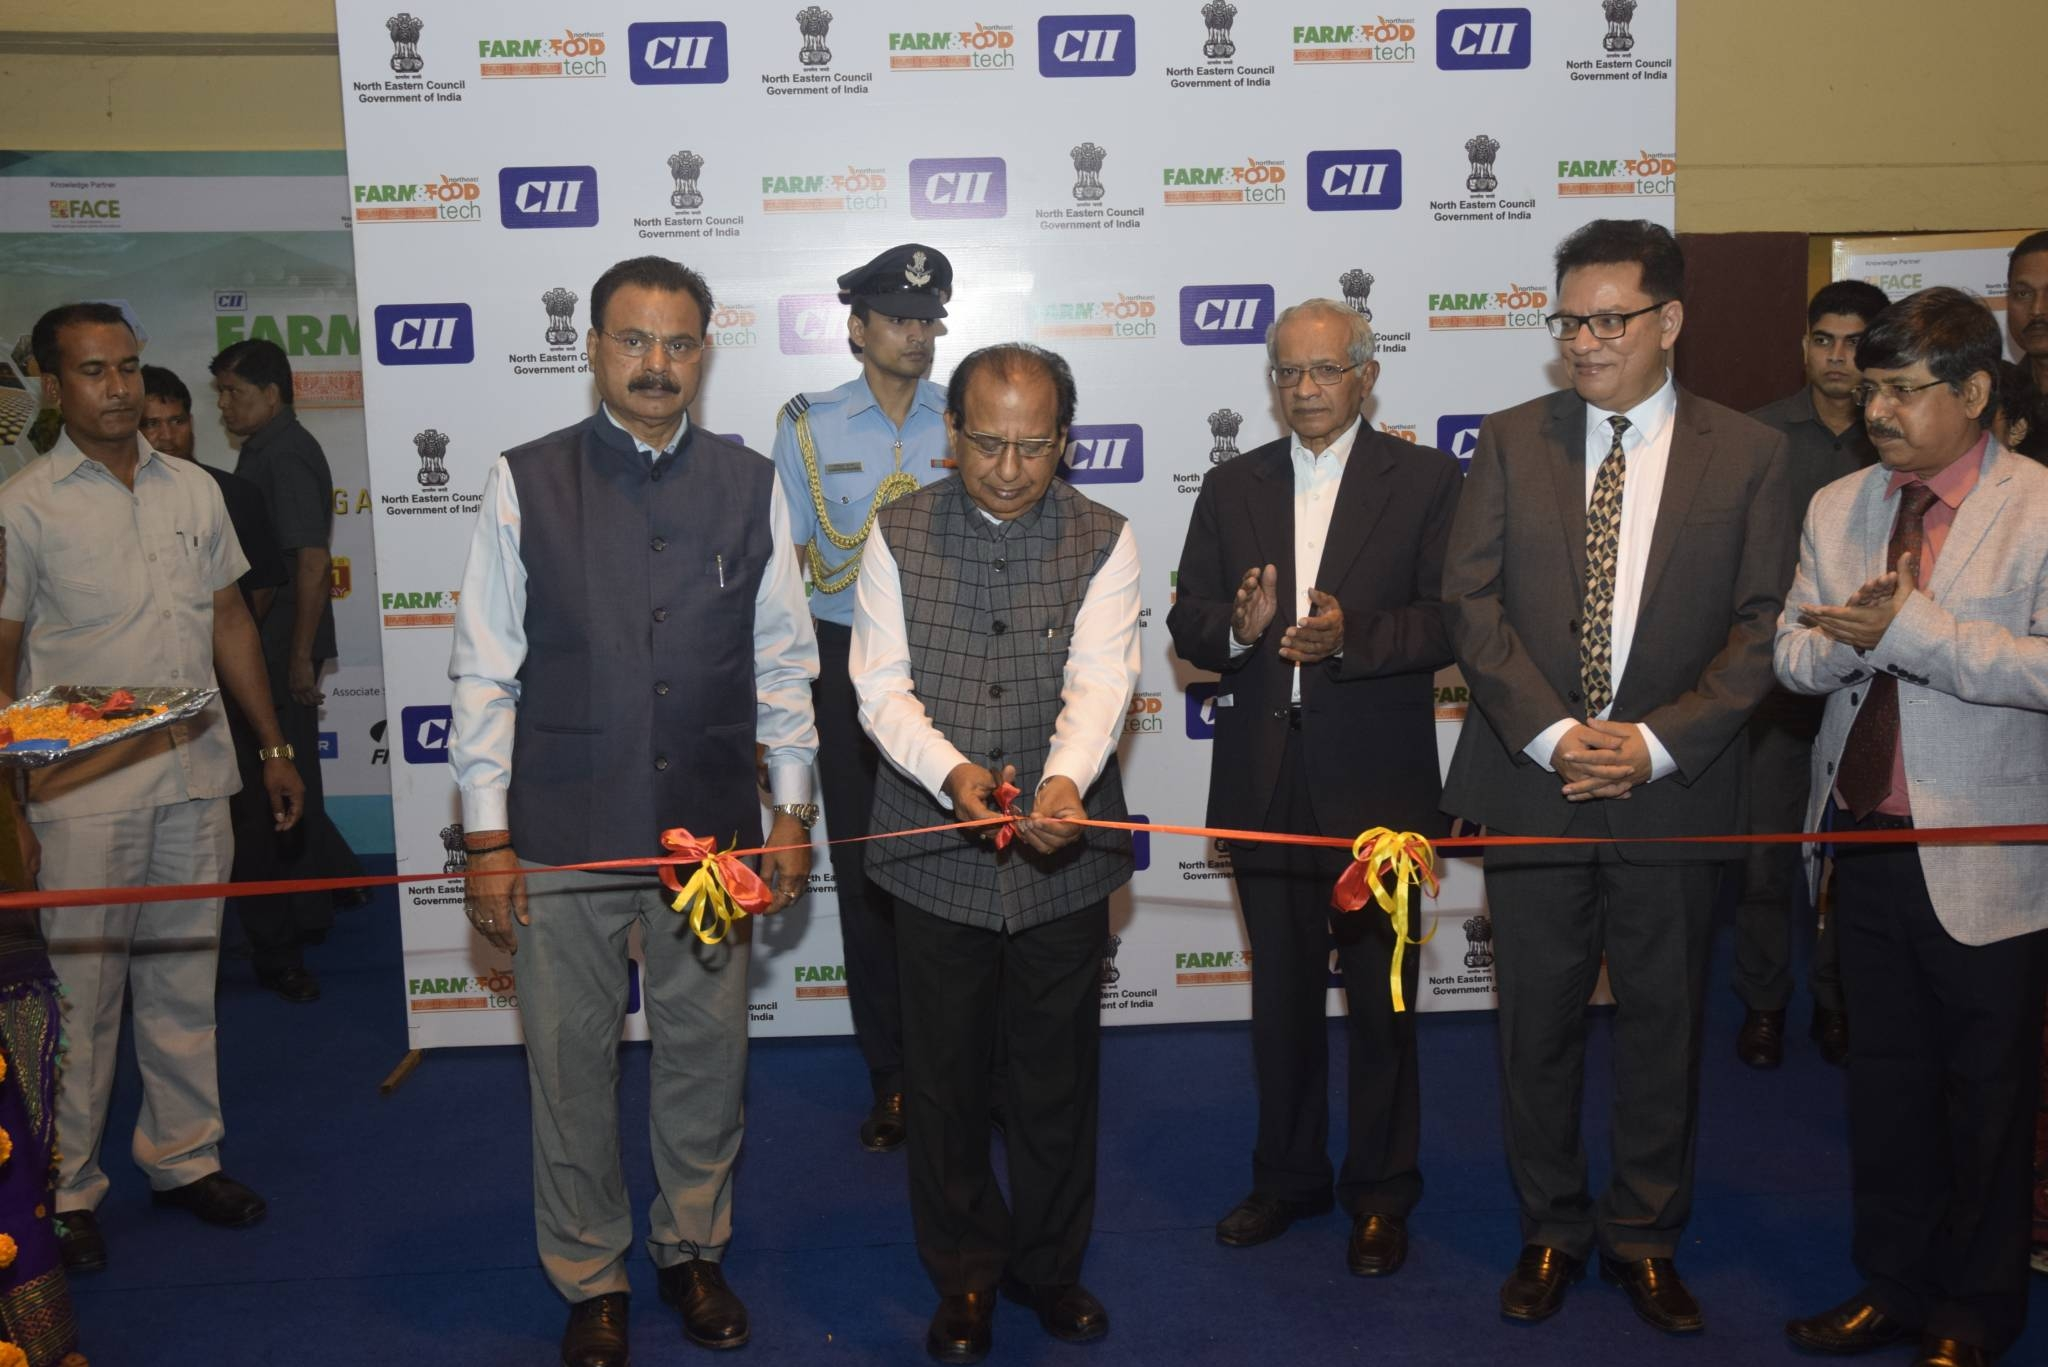 Governor opens North East Farm and Food Tech 2018